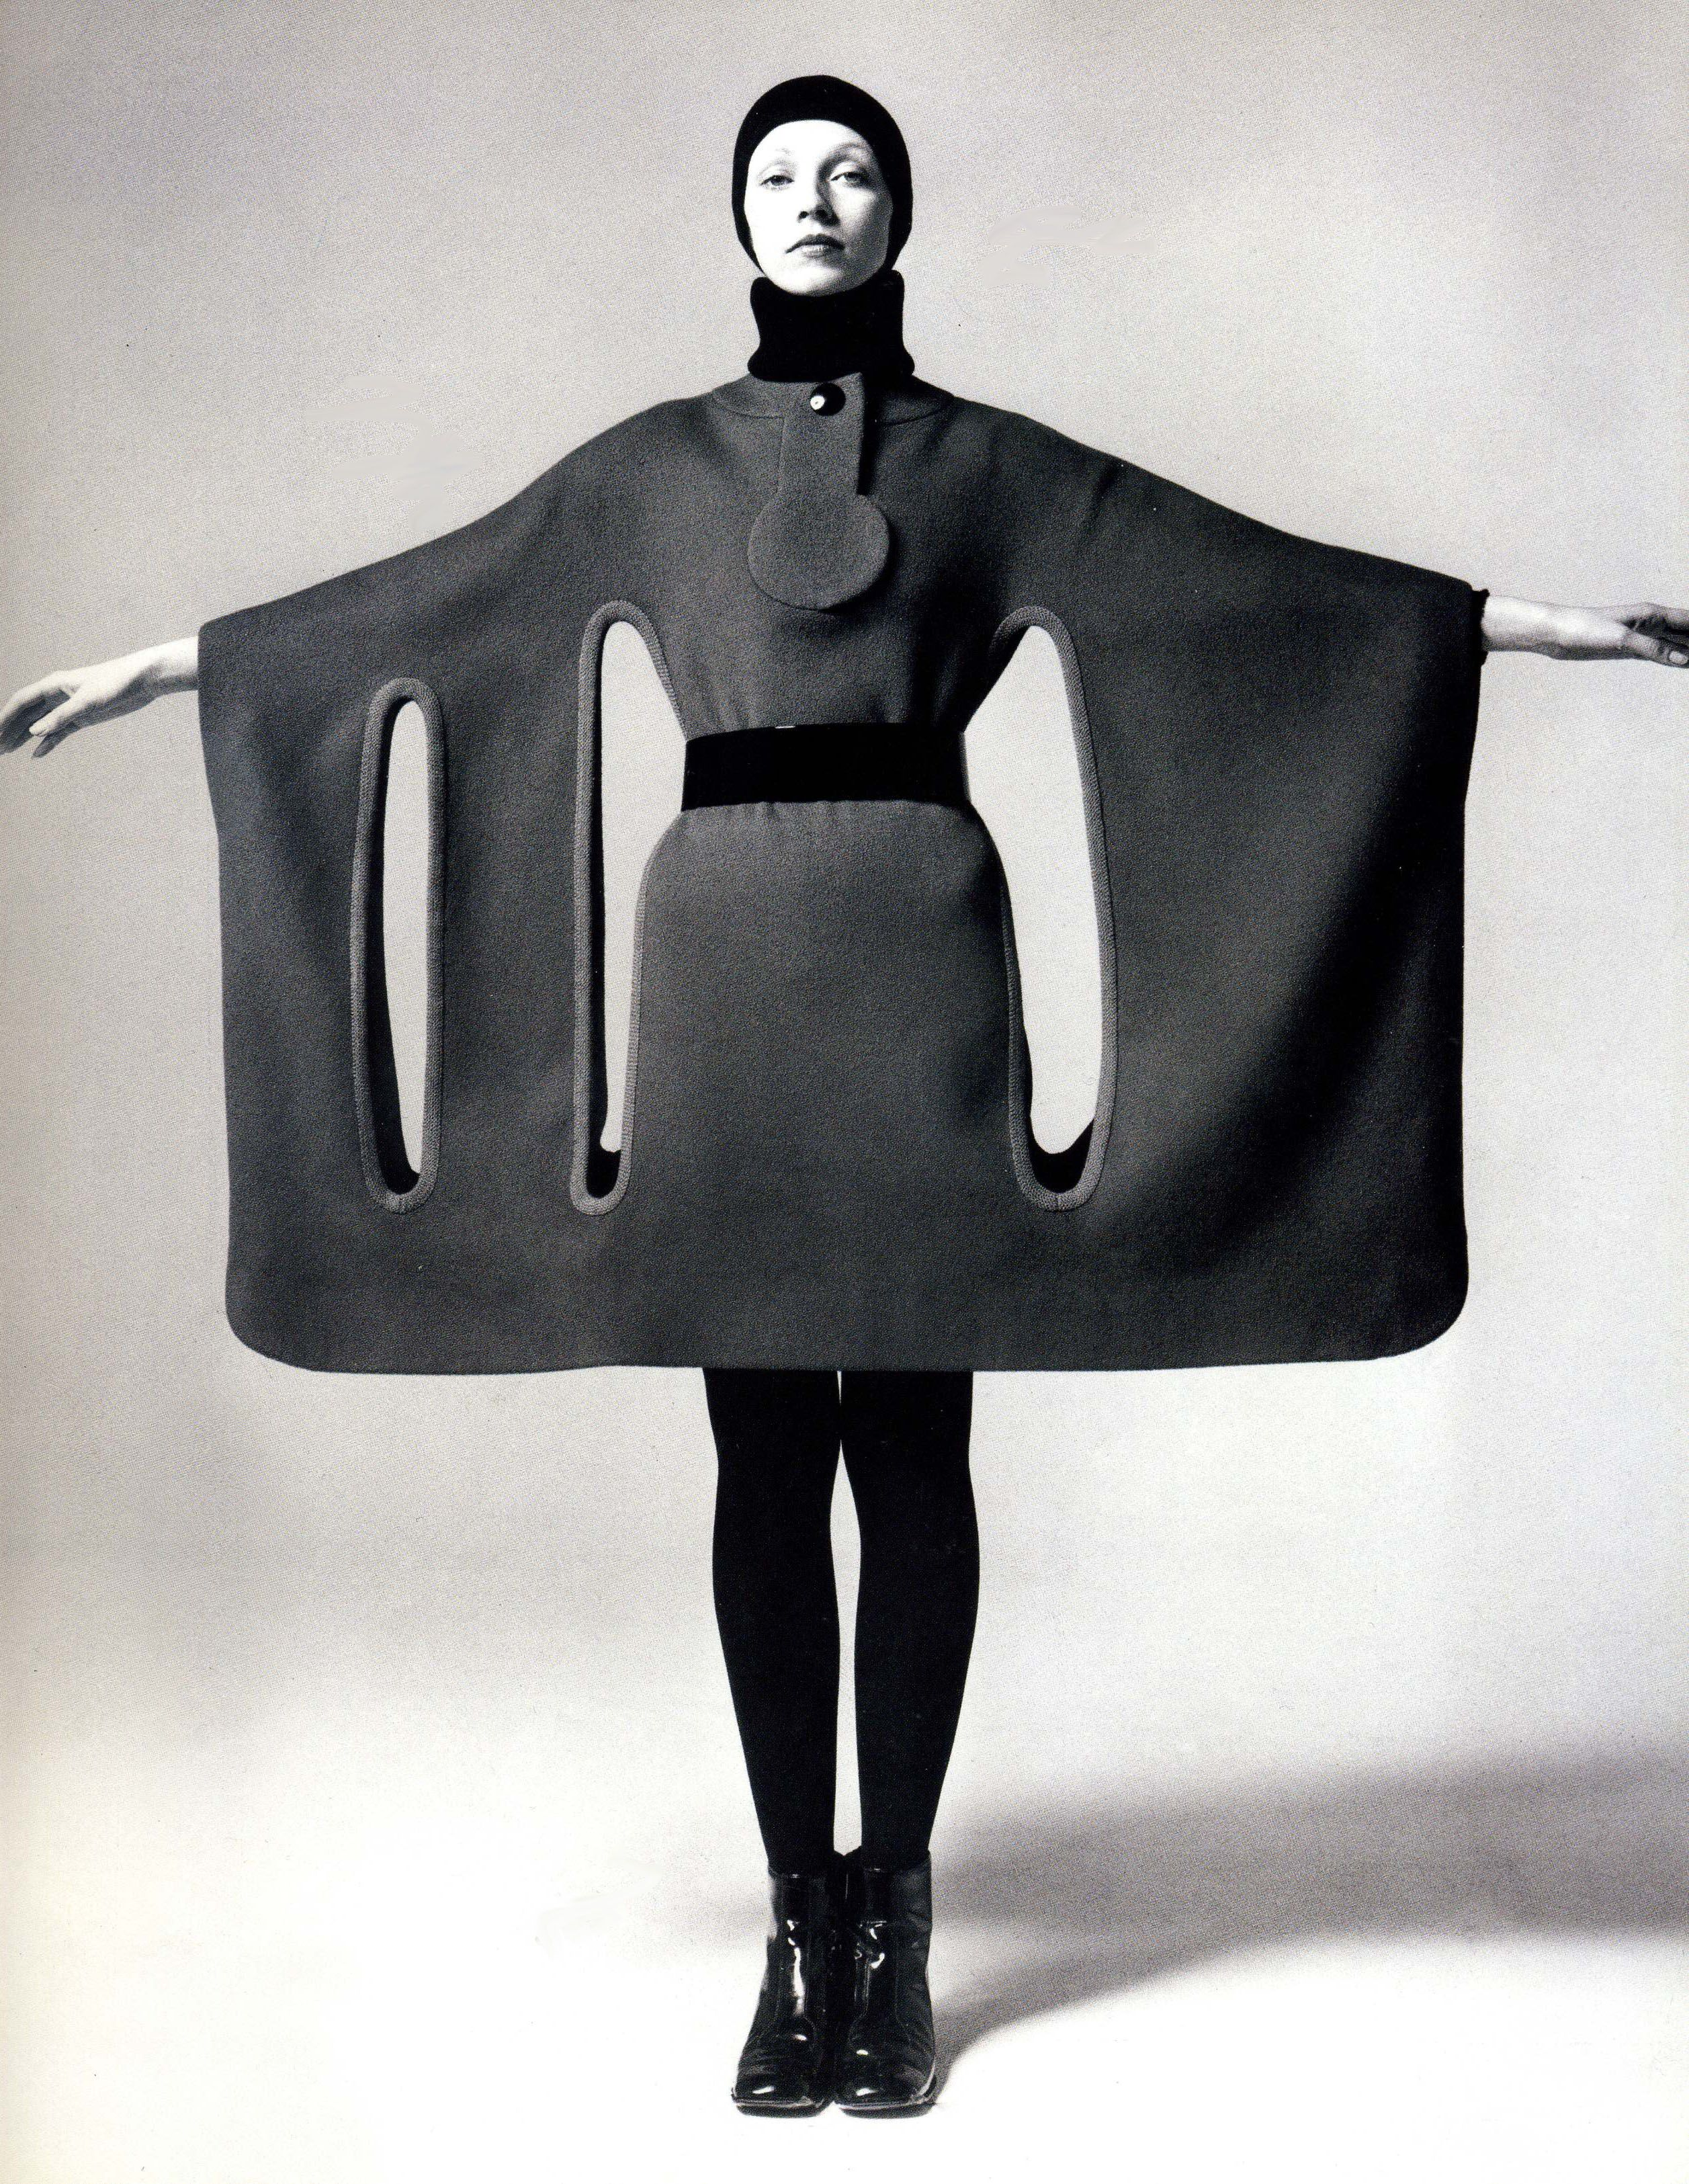 Pierre Cardin Cardin Was Known For His Avant Garde Style And His Space Age Designs He Prefers Geometric Shapes And Mo Fashion History Future Fashion Fashion